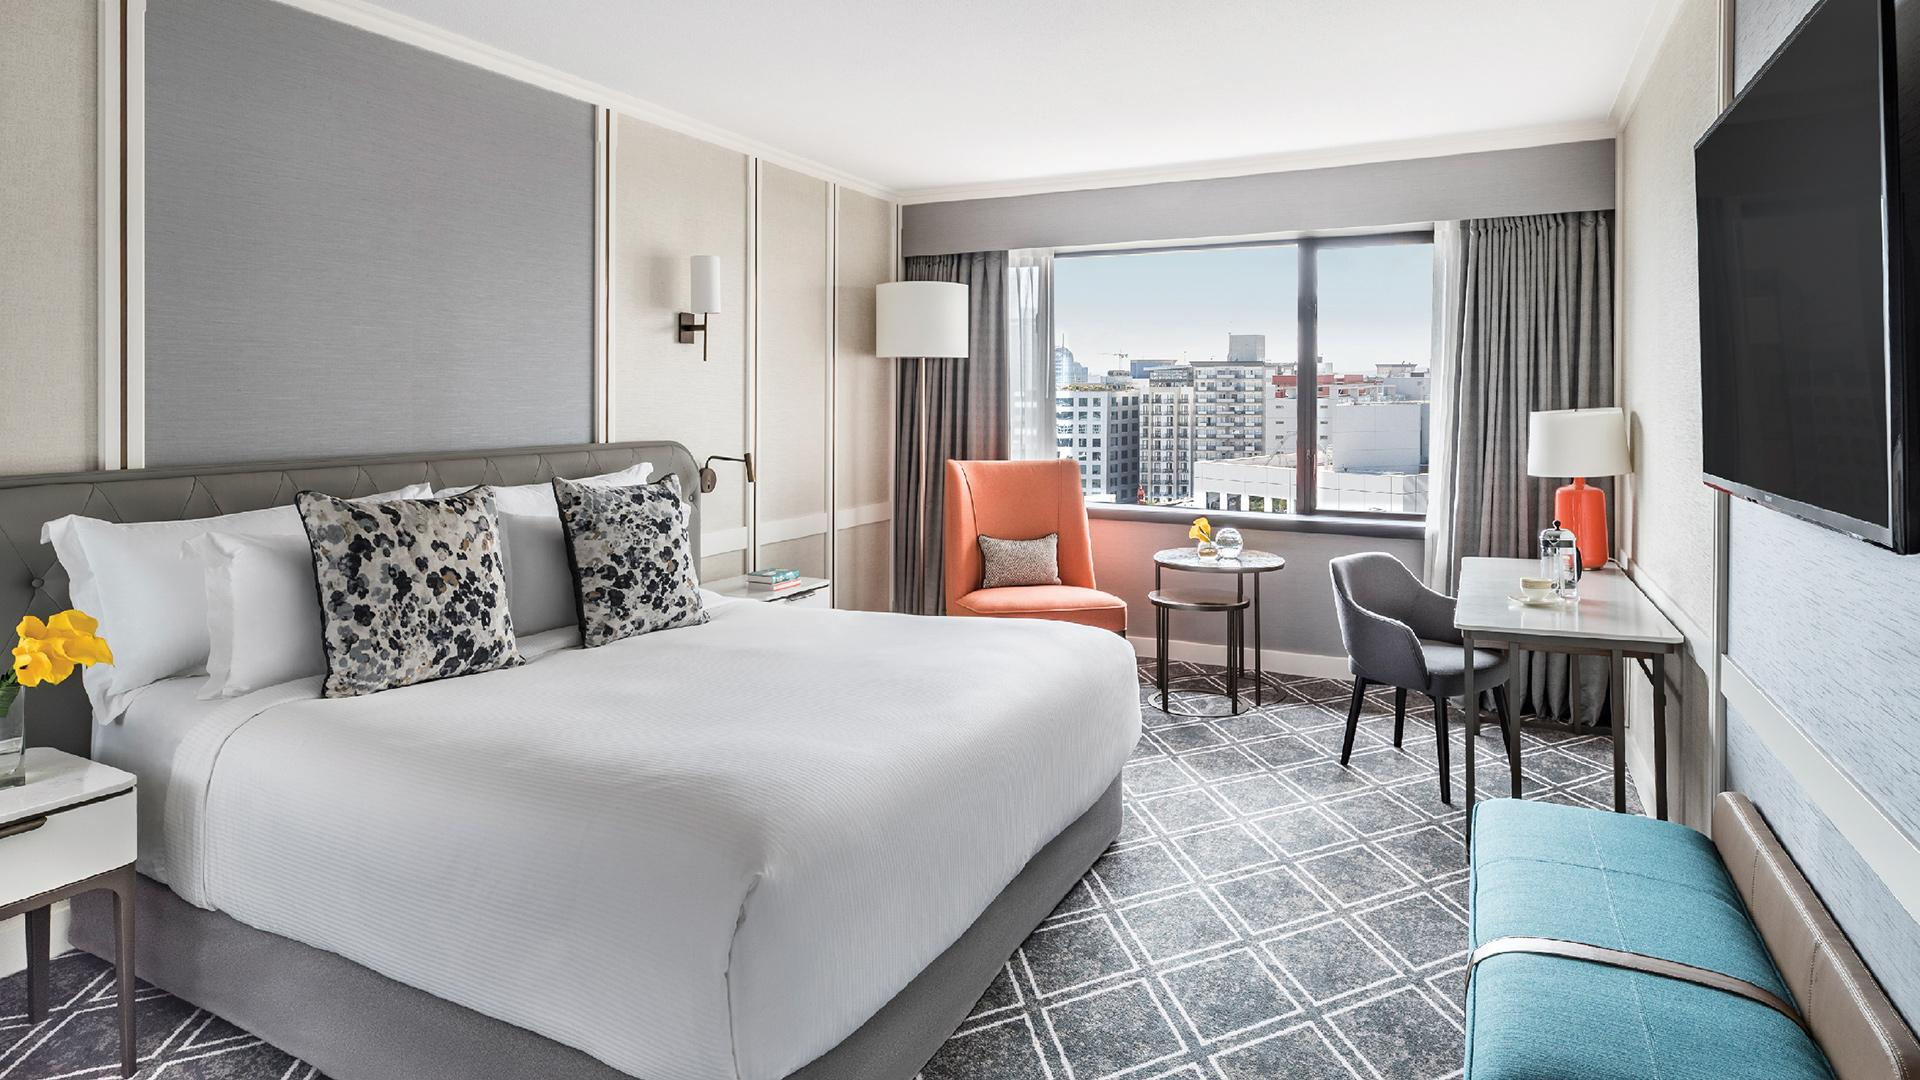 Deluxe Room image 1 at Cordis Auckland by null, Auckland, New Zealand